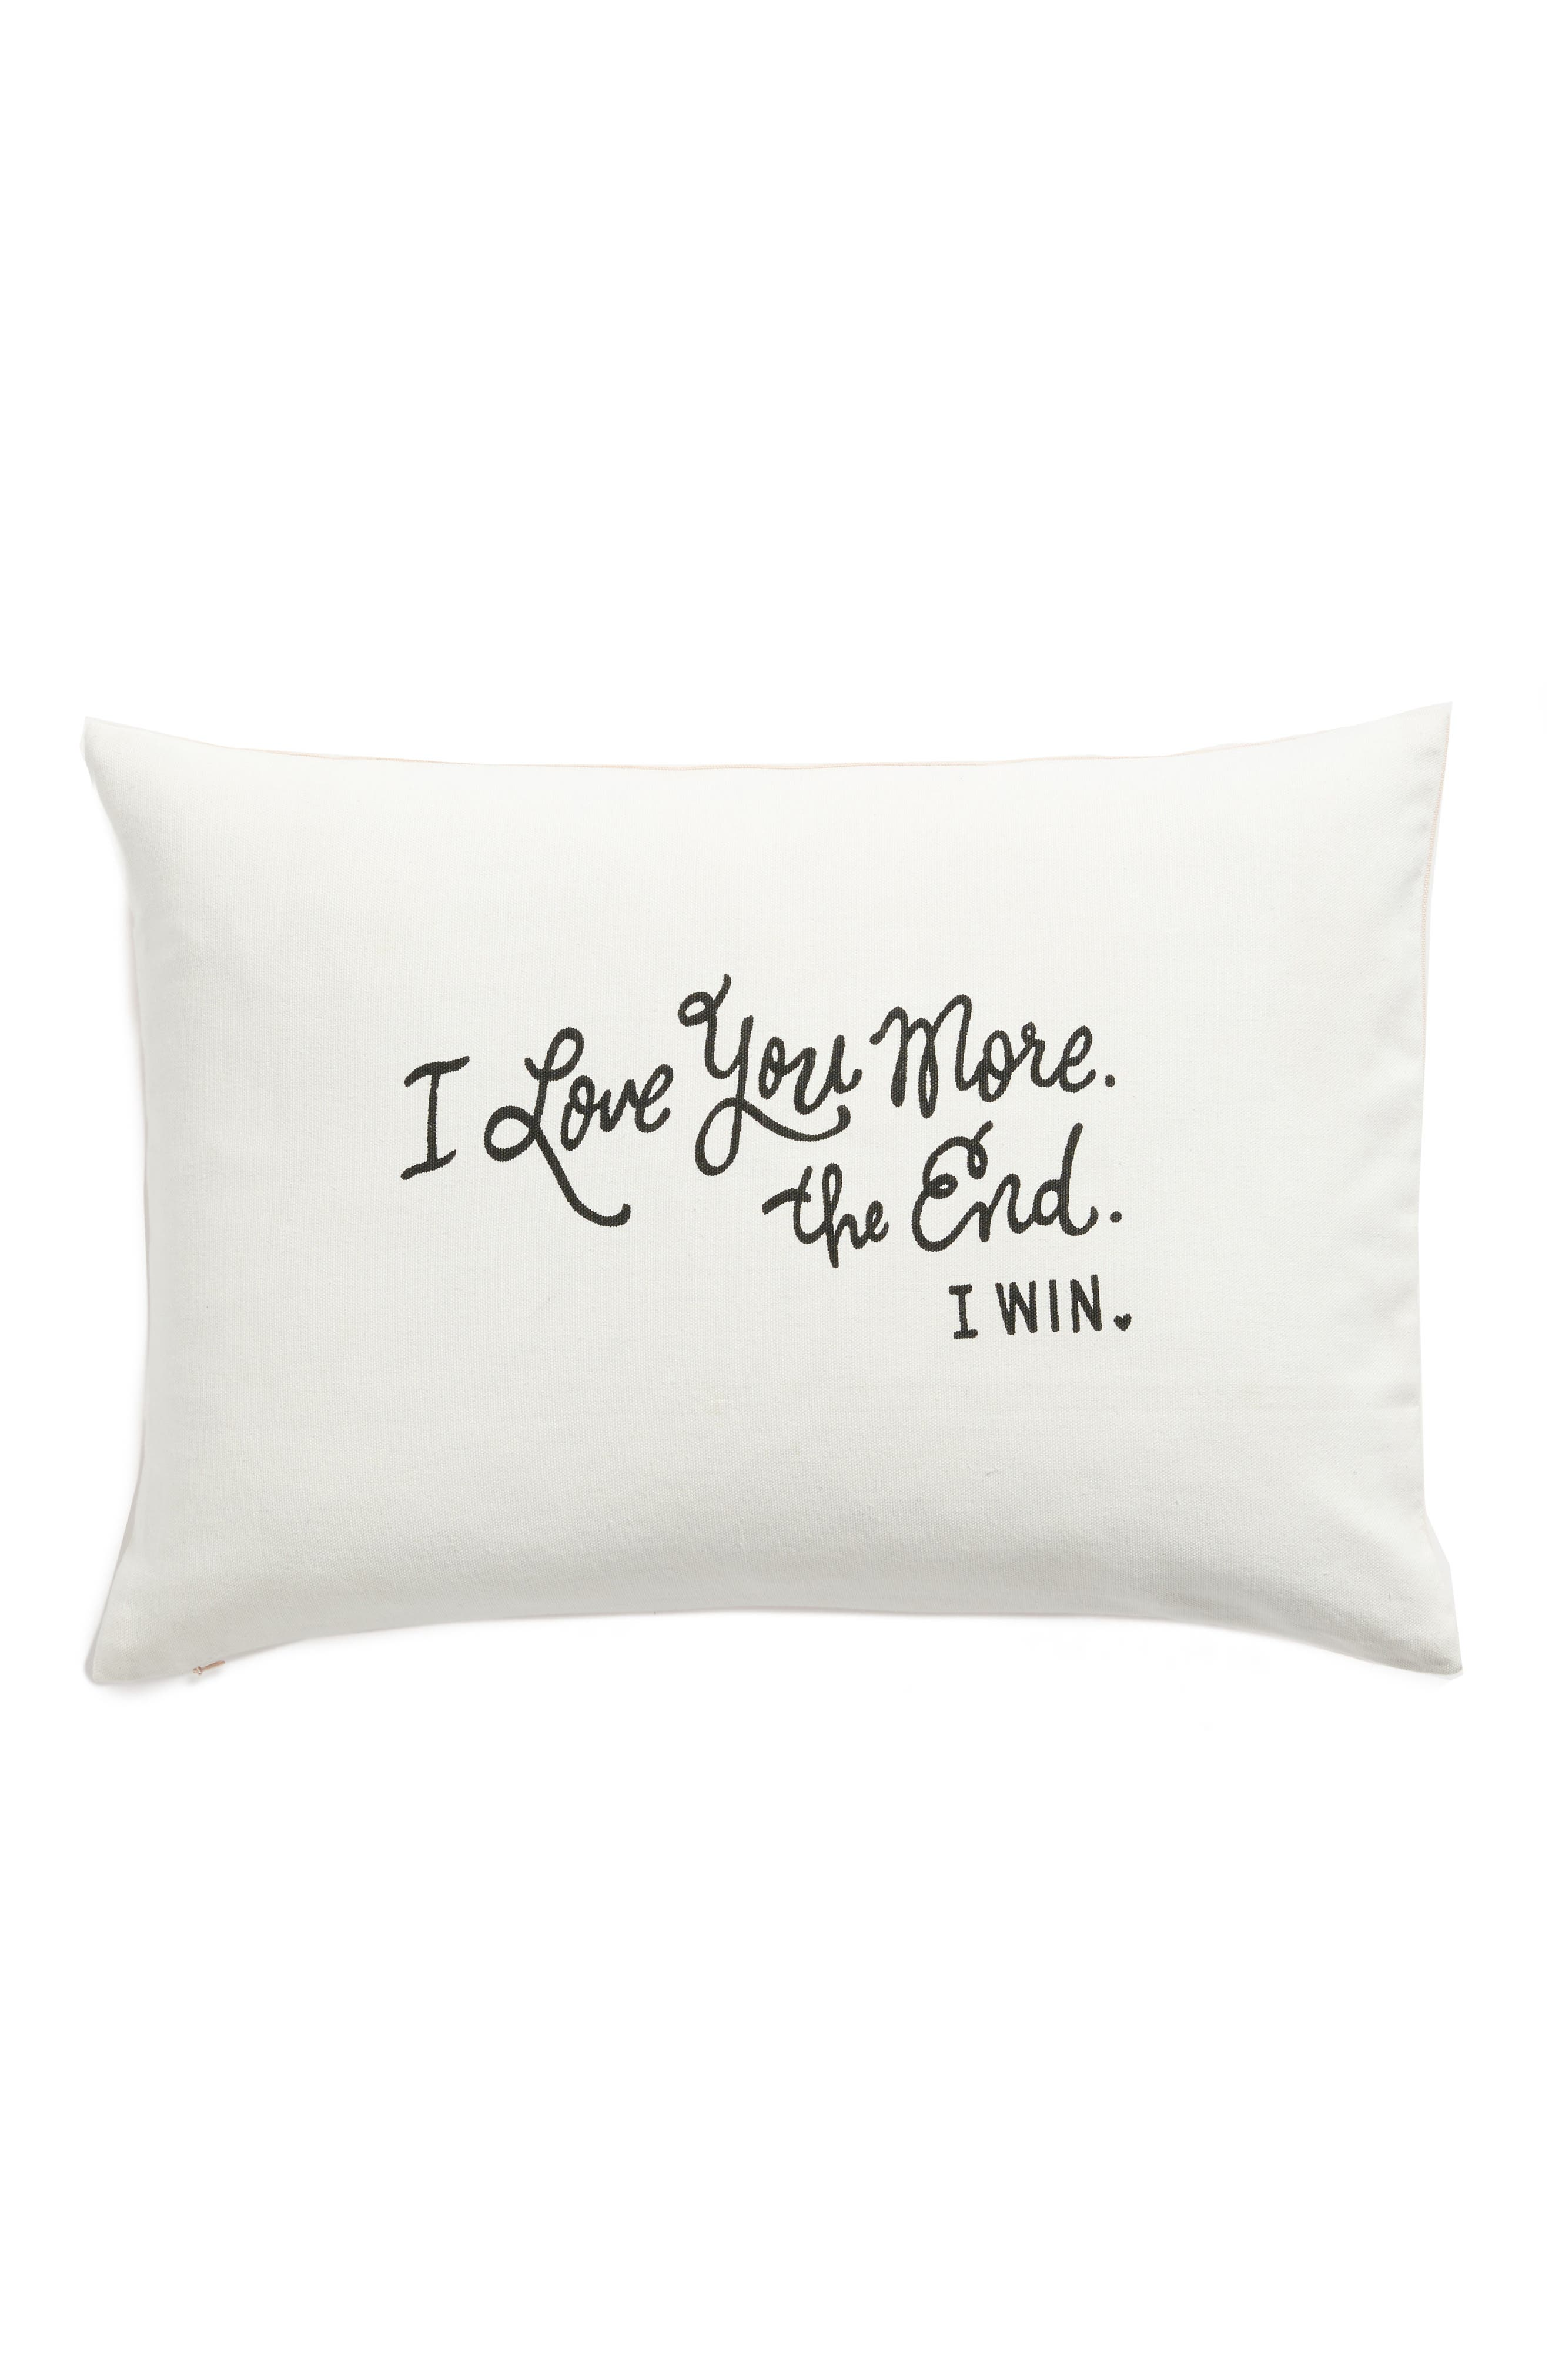 I Love You More Accent Pillow,                             Main thumbnail 1, color,                             Ivory